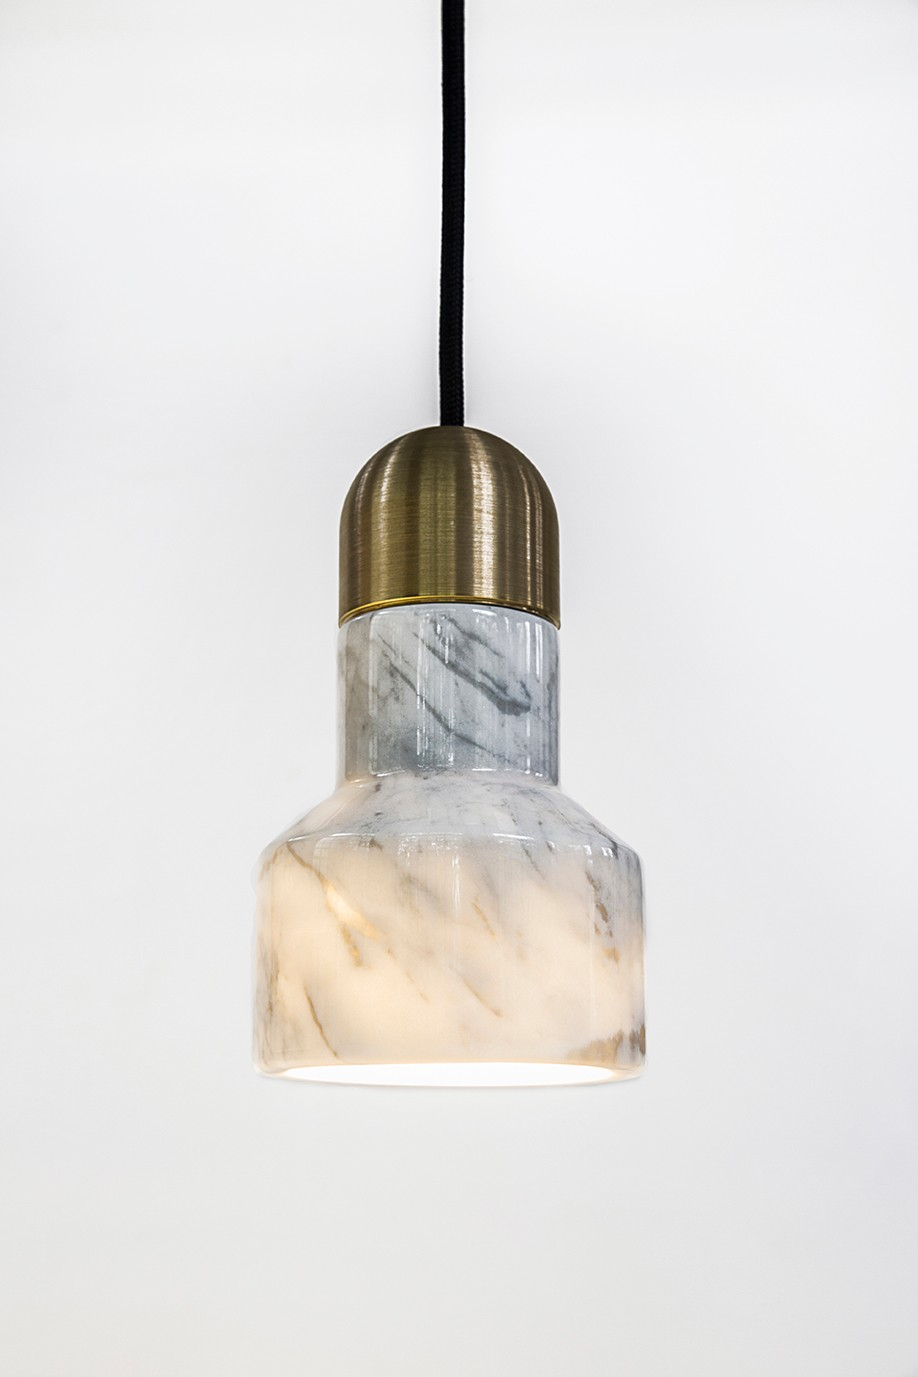 QIE Marble Pendant lamp Idea Design Modern lava Pendant Lamps Cement Lighting for cafe restaurant office dining room